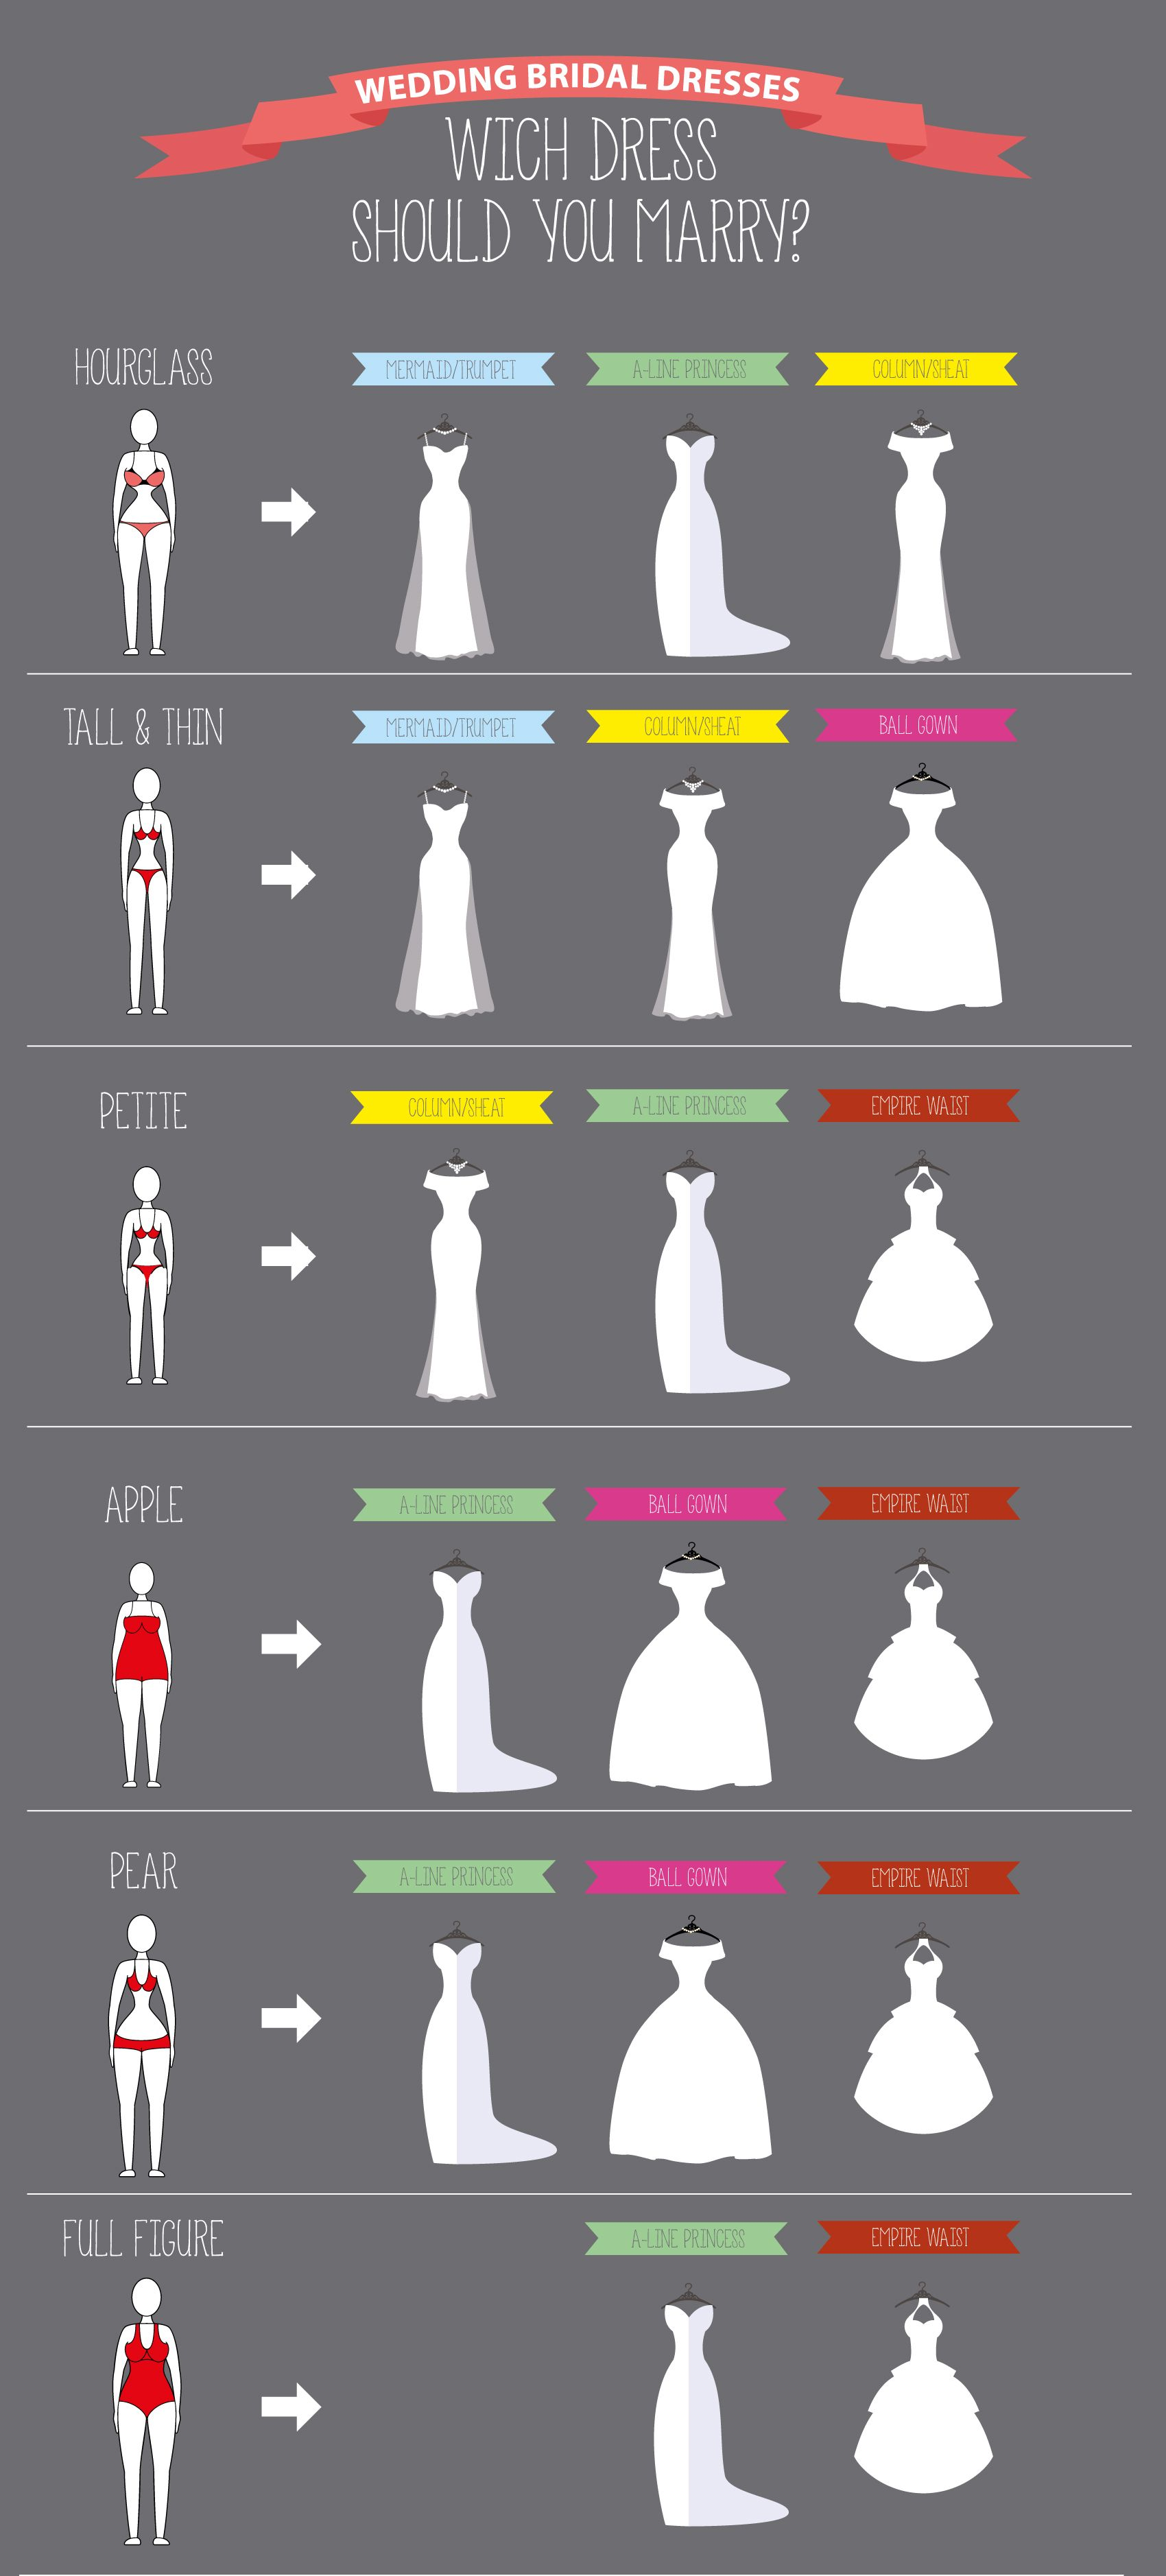 Here is the ultimate guide to Wedding Dresses